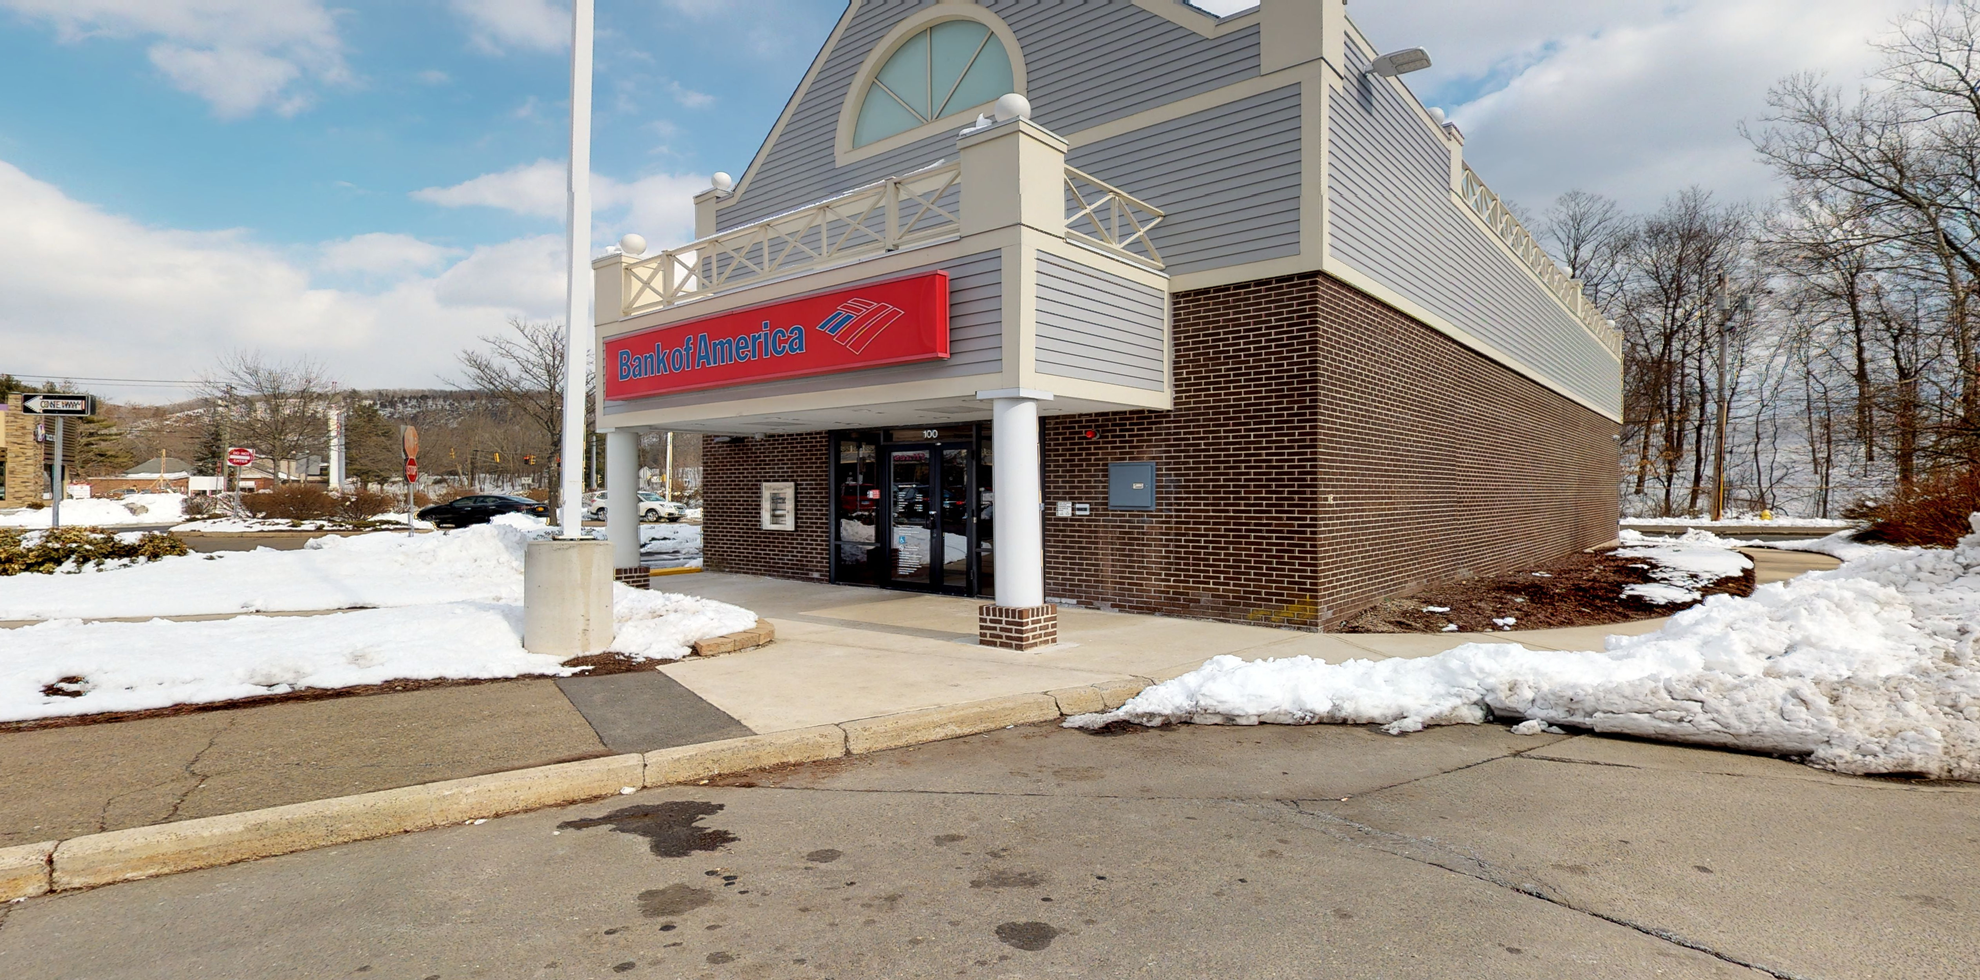 Bank of America financial center with walk-up ATM   100 Amity Rd, New Haven, CT 06515